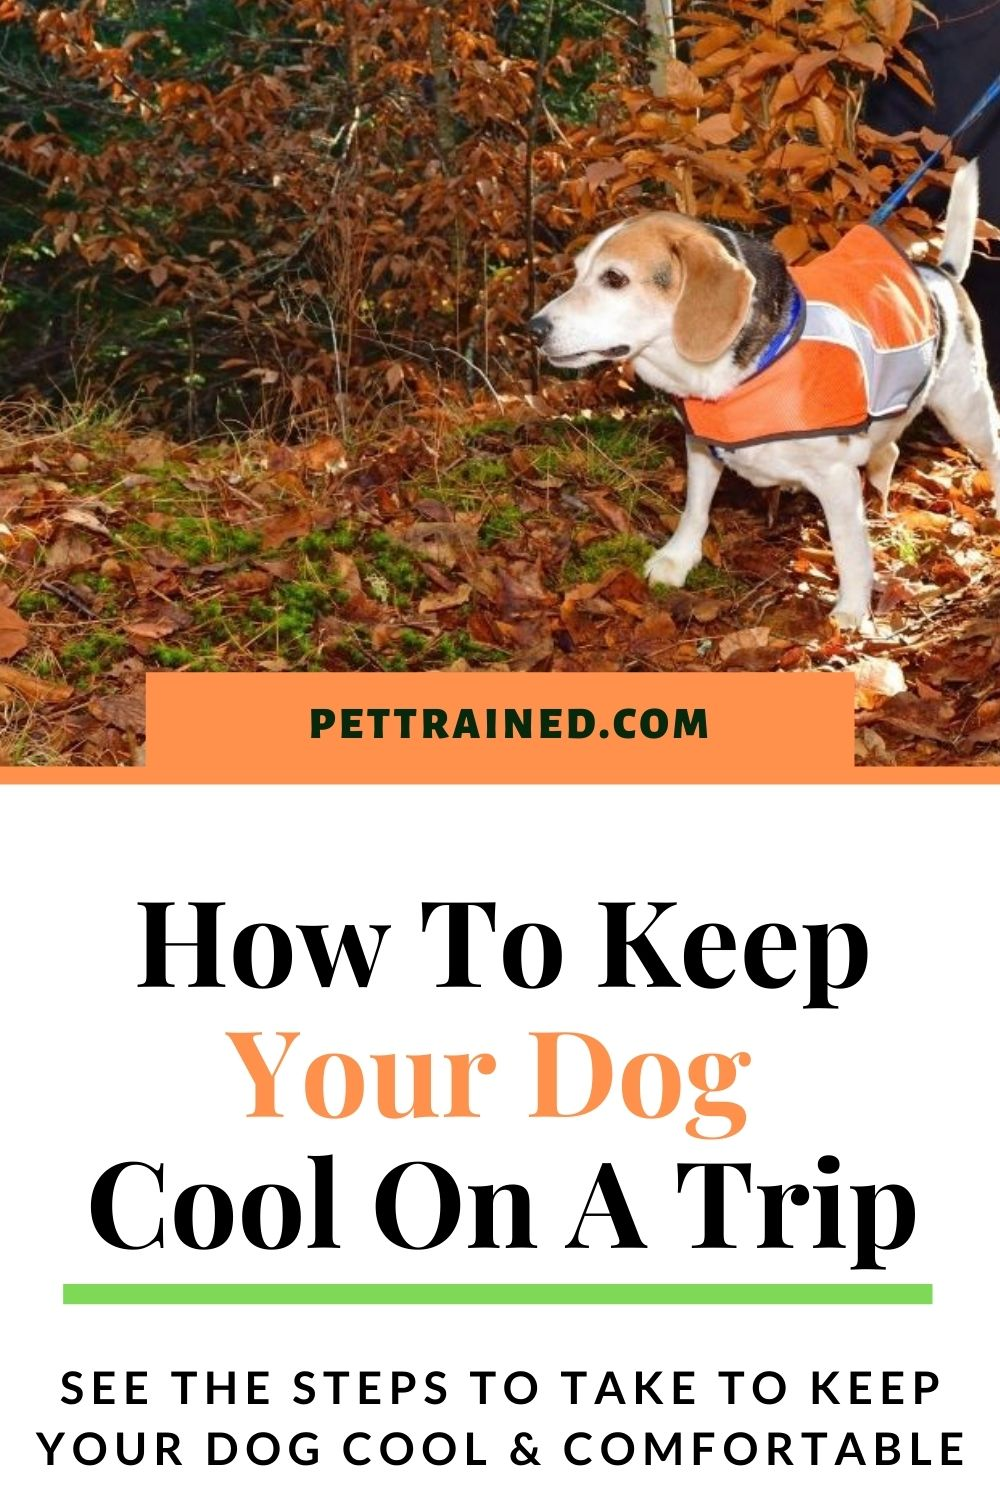 How to protect a dog from heatstroke